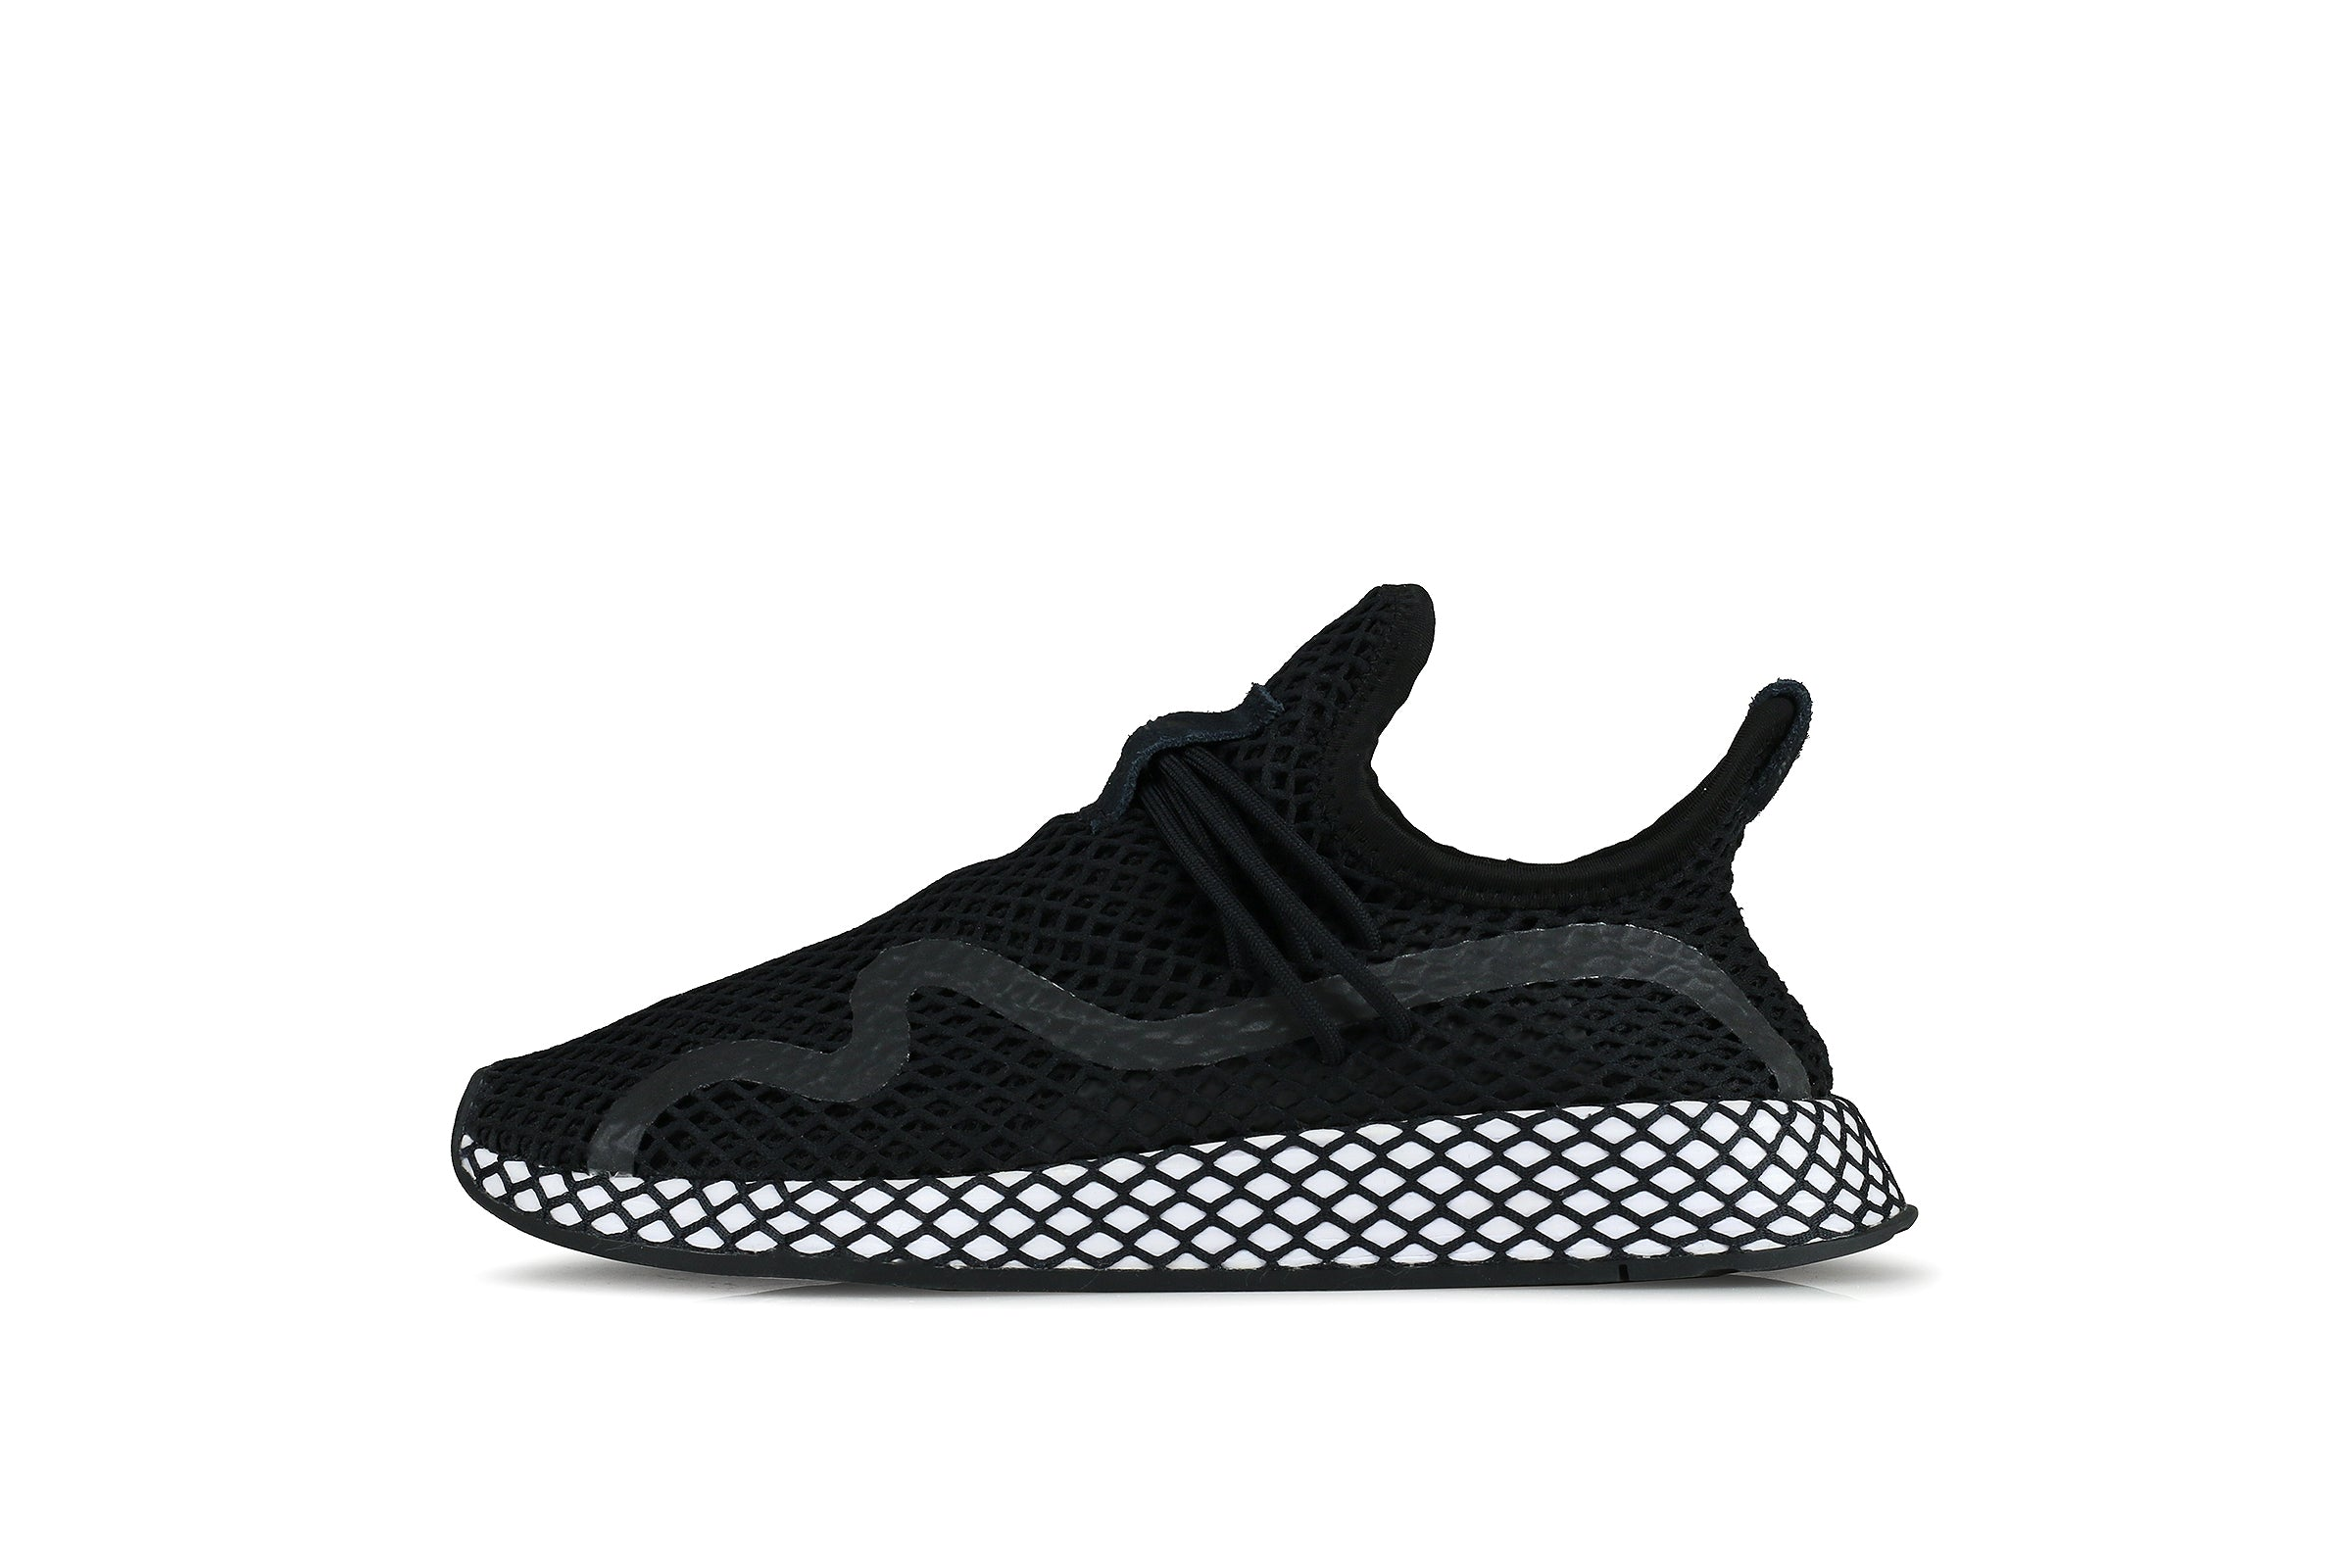 Adidas Deerupt New Runner